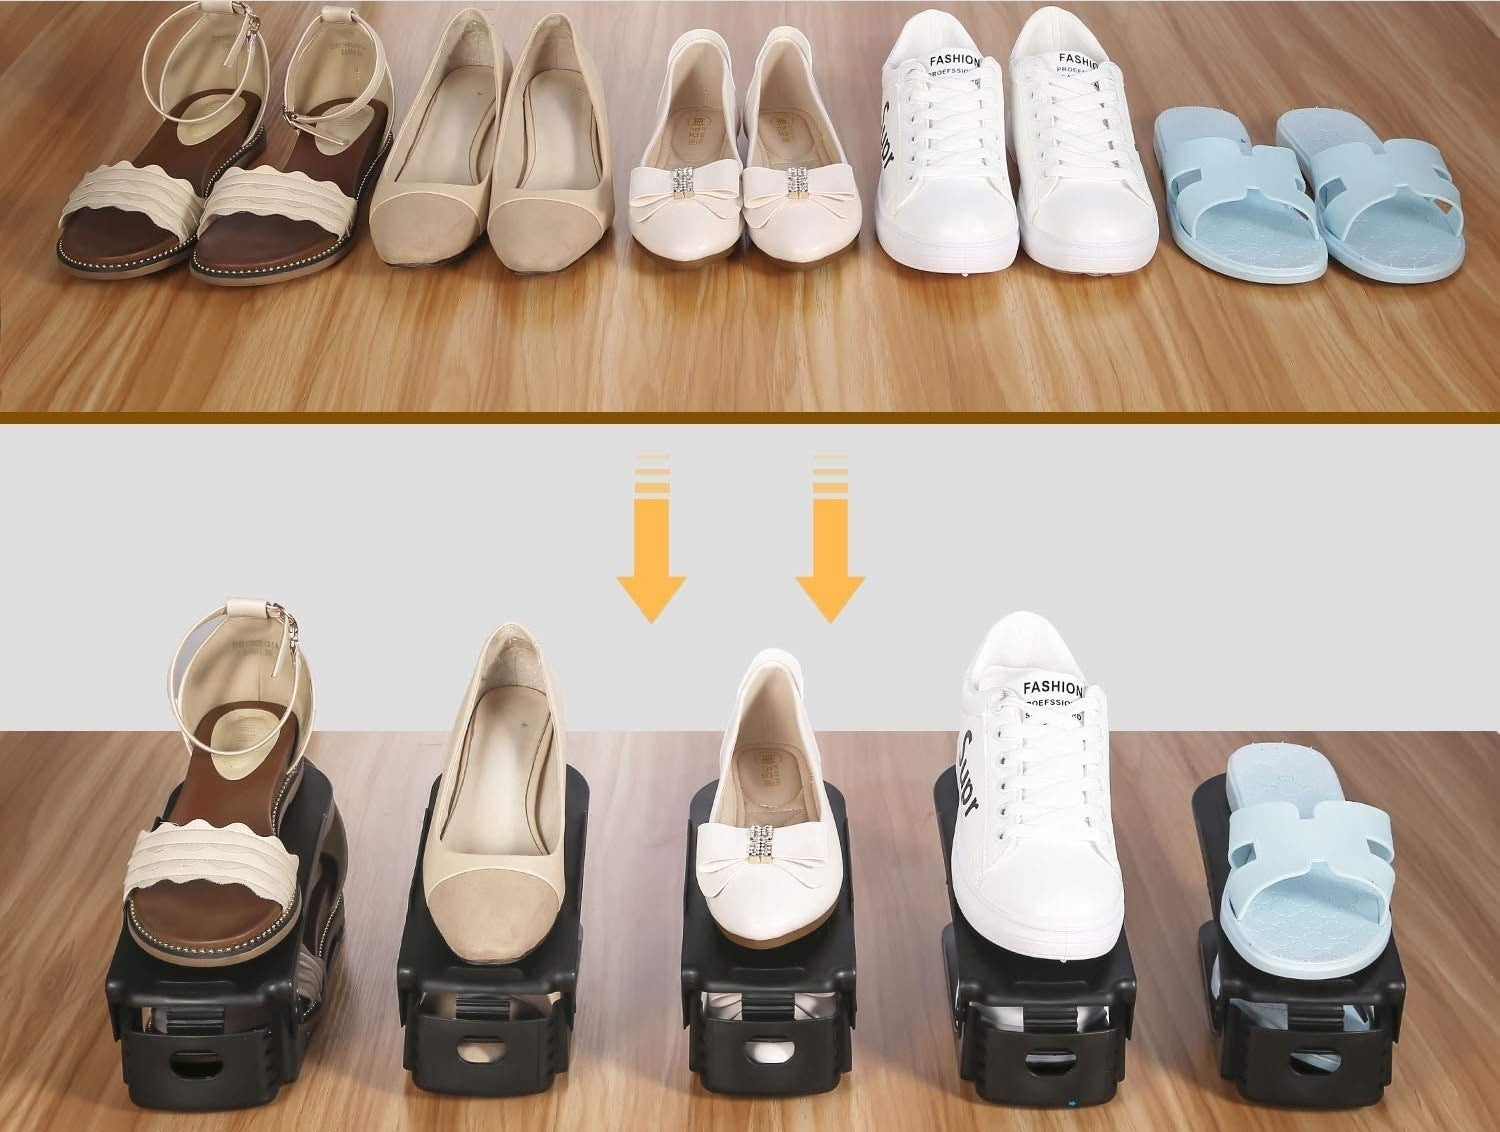 Five pairs of shoes lined up without the shoe stackers and the same fie pairs of shoes in the shoe stacks